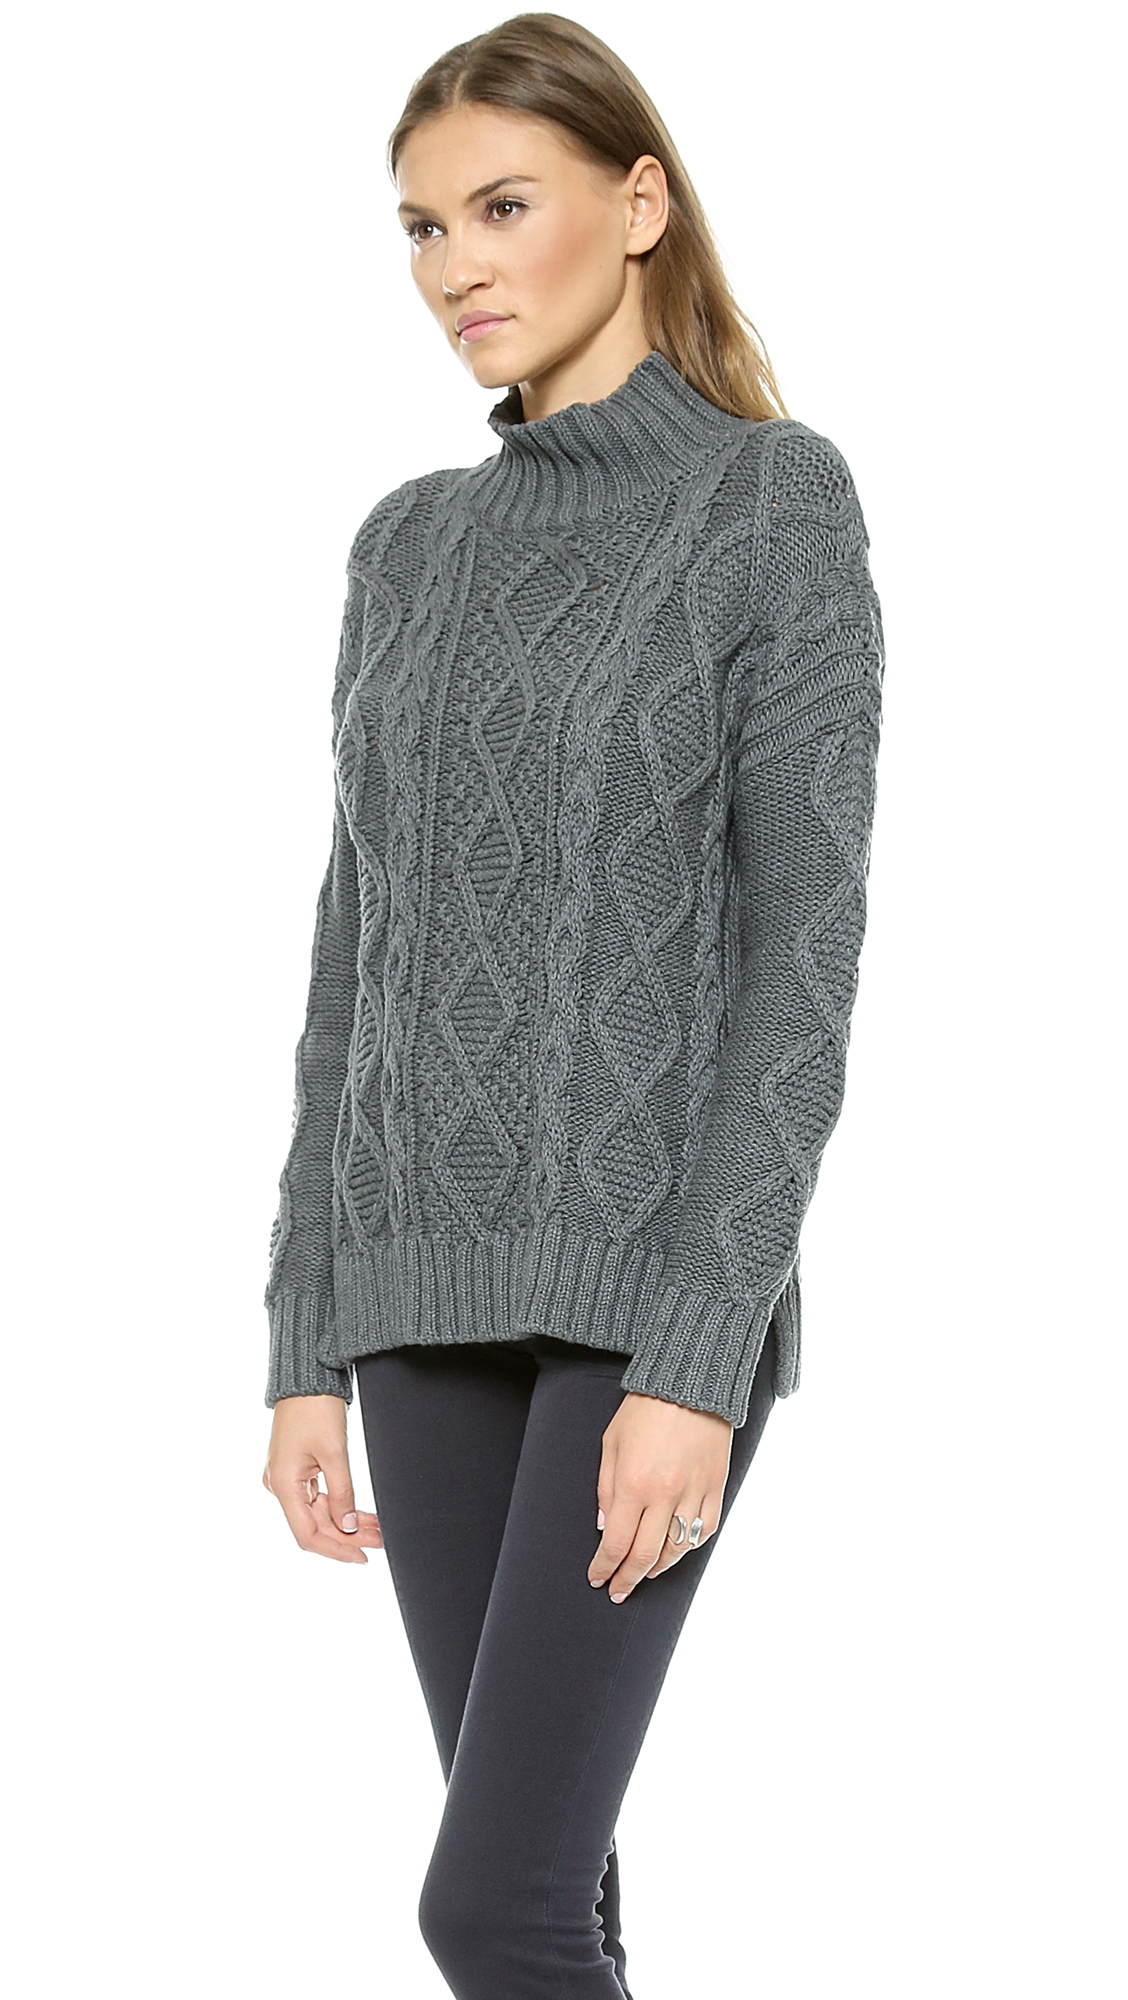 525 america Xo Cable Knit Sweater - Dark Heather Grey in Gray | Lyst